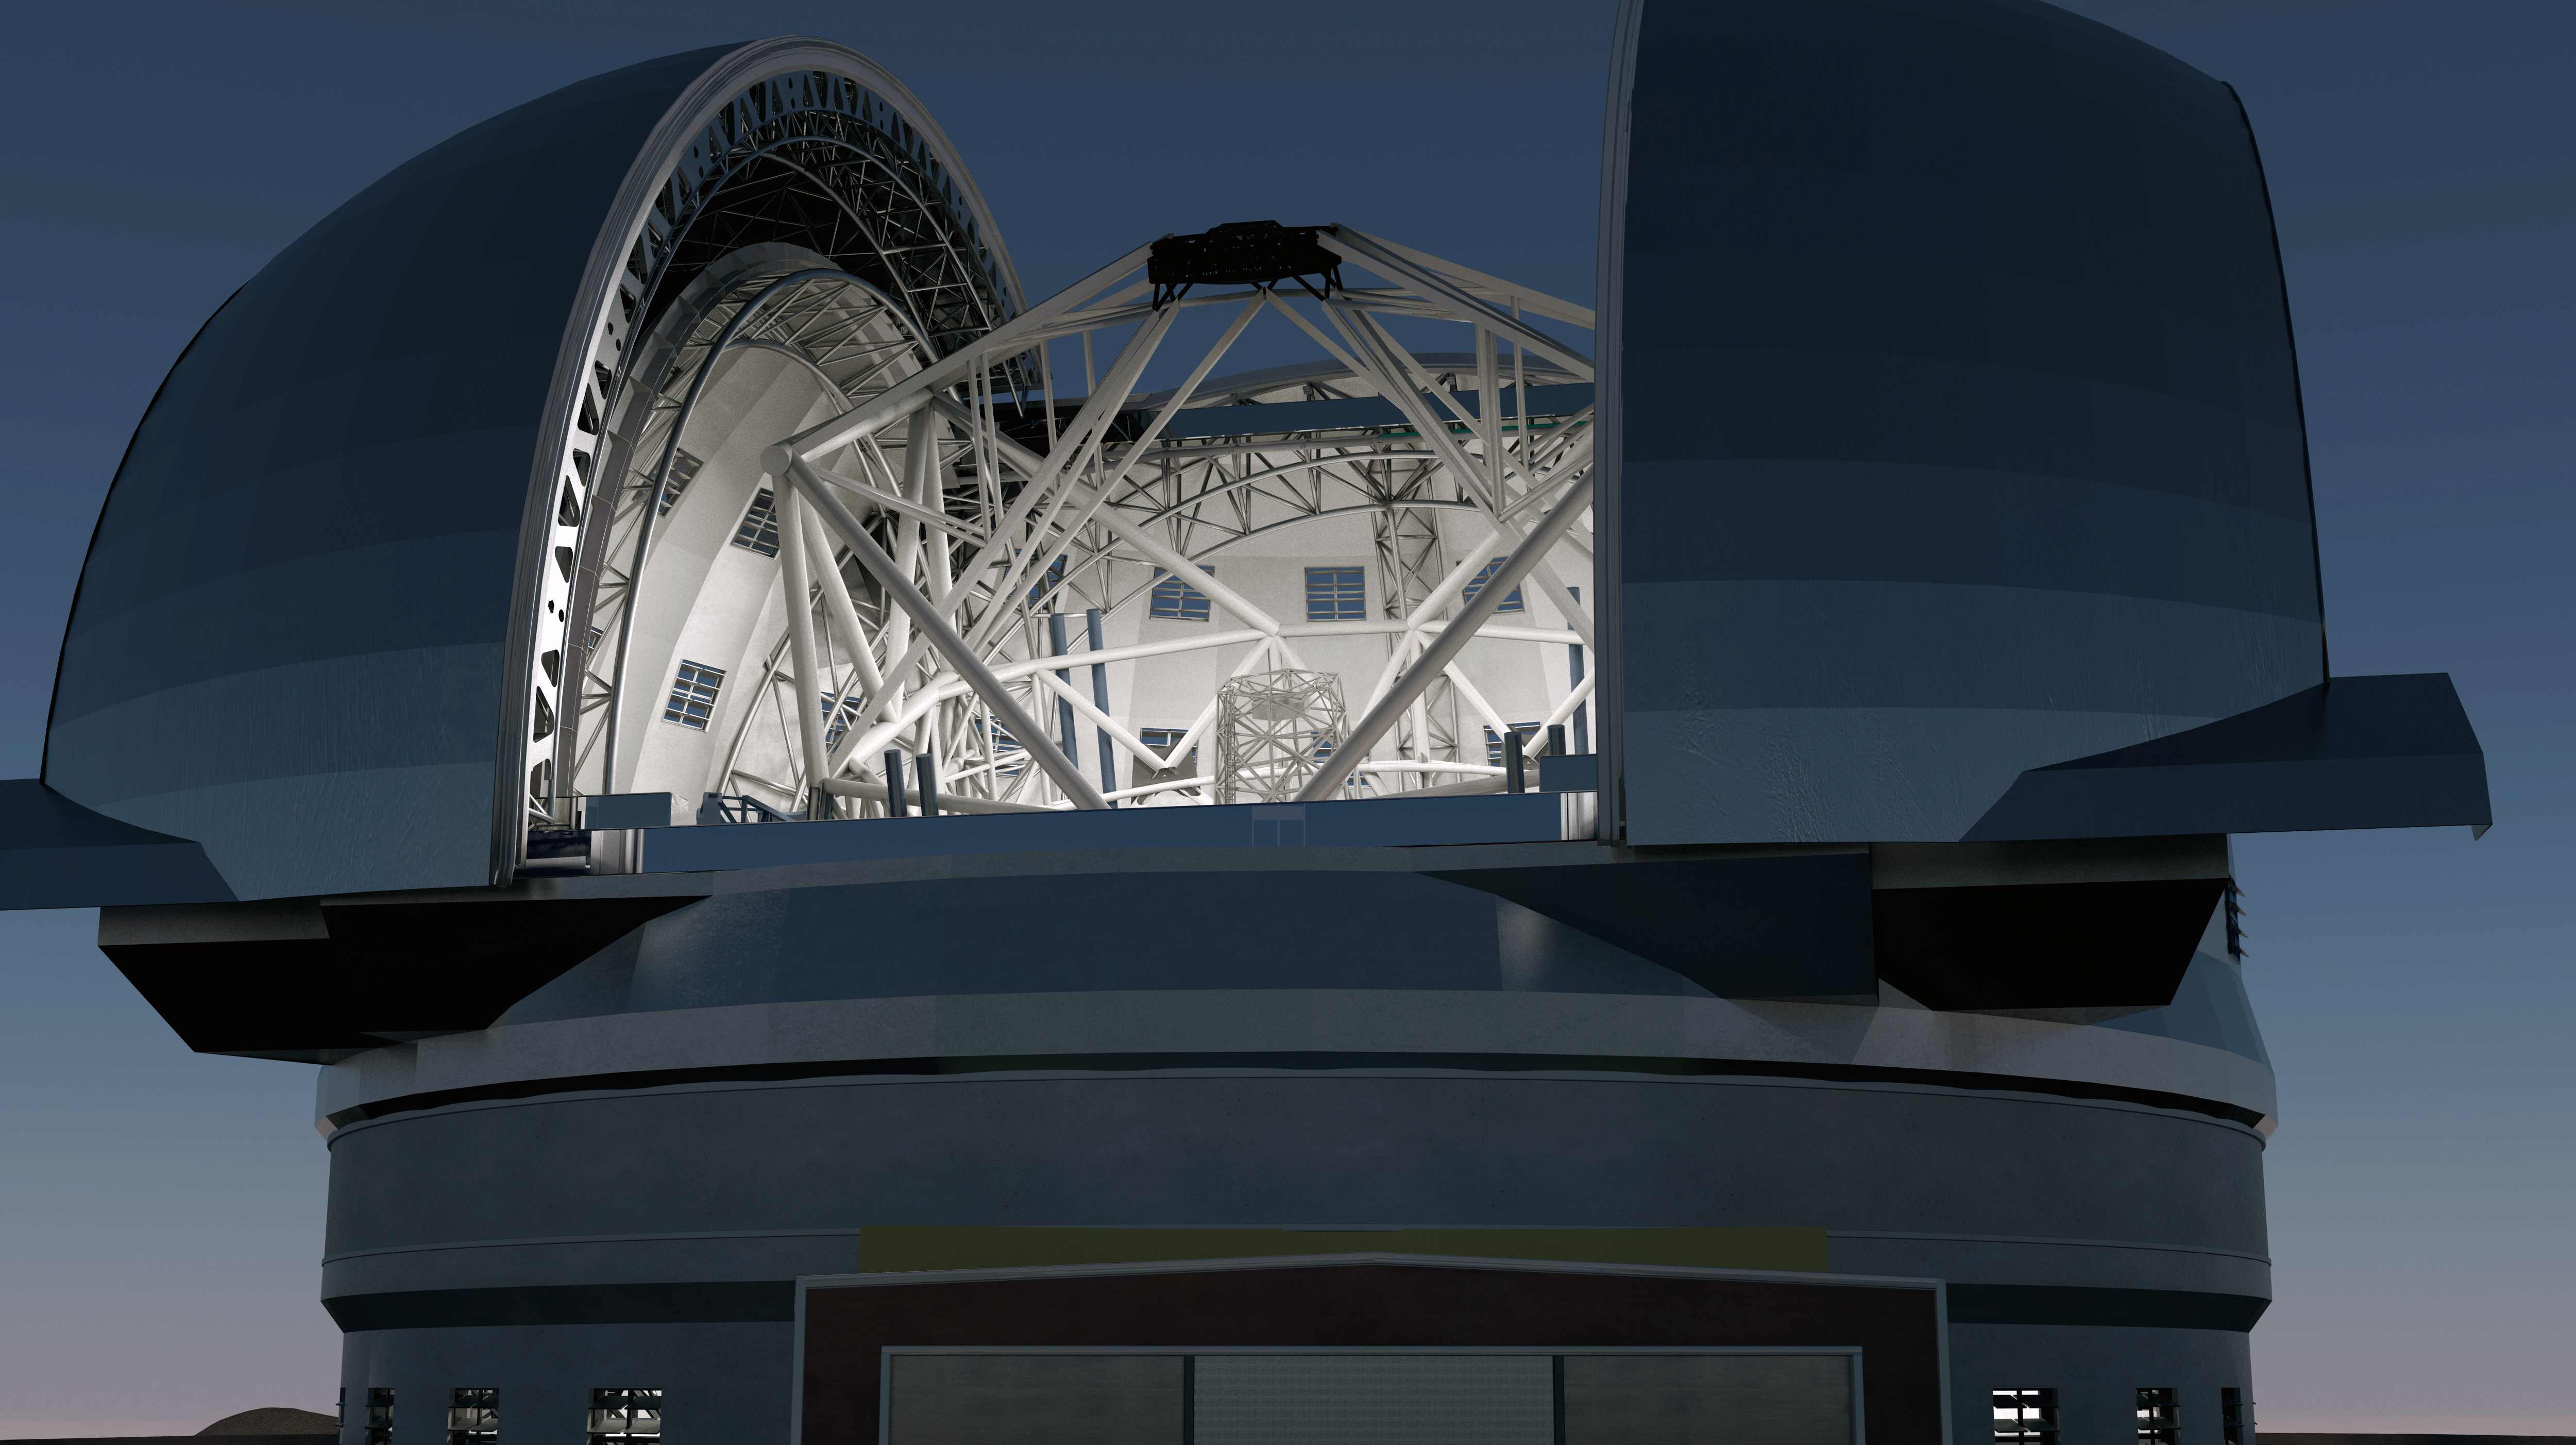 Construction of World's Largest Telescope Begins in 2012